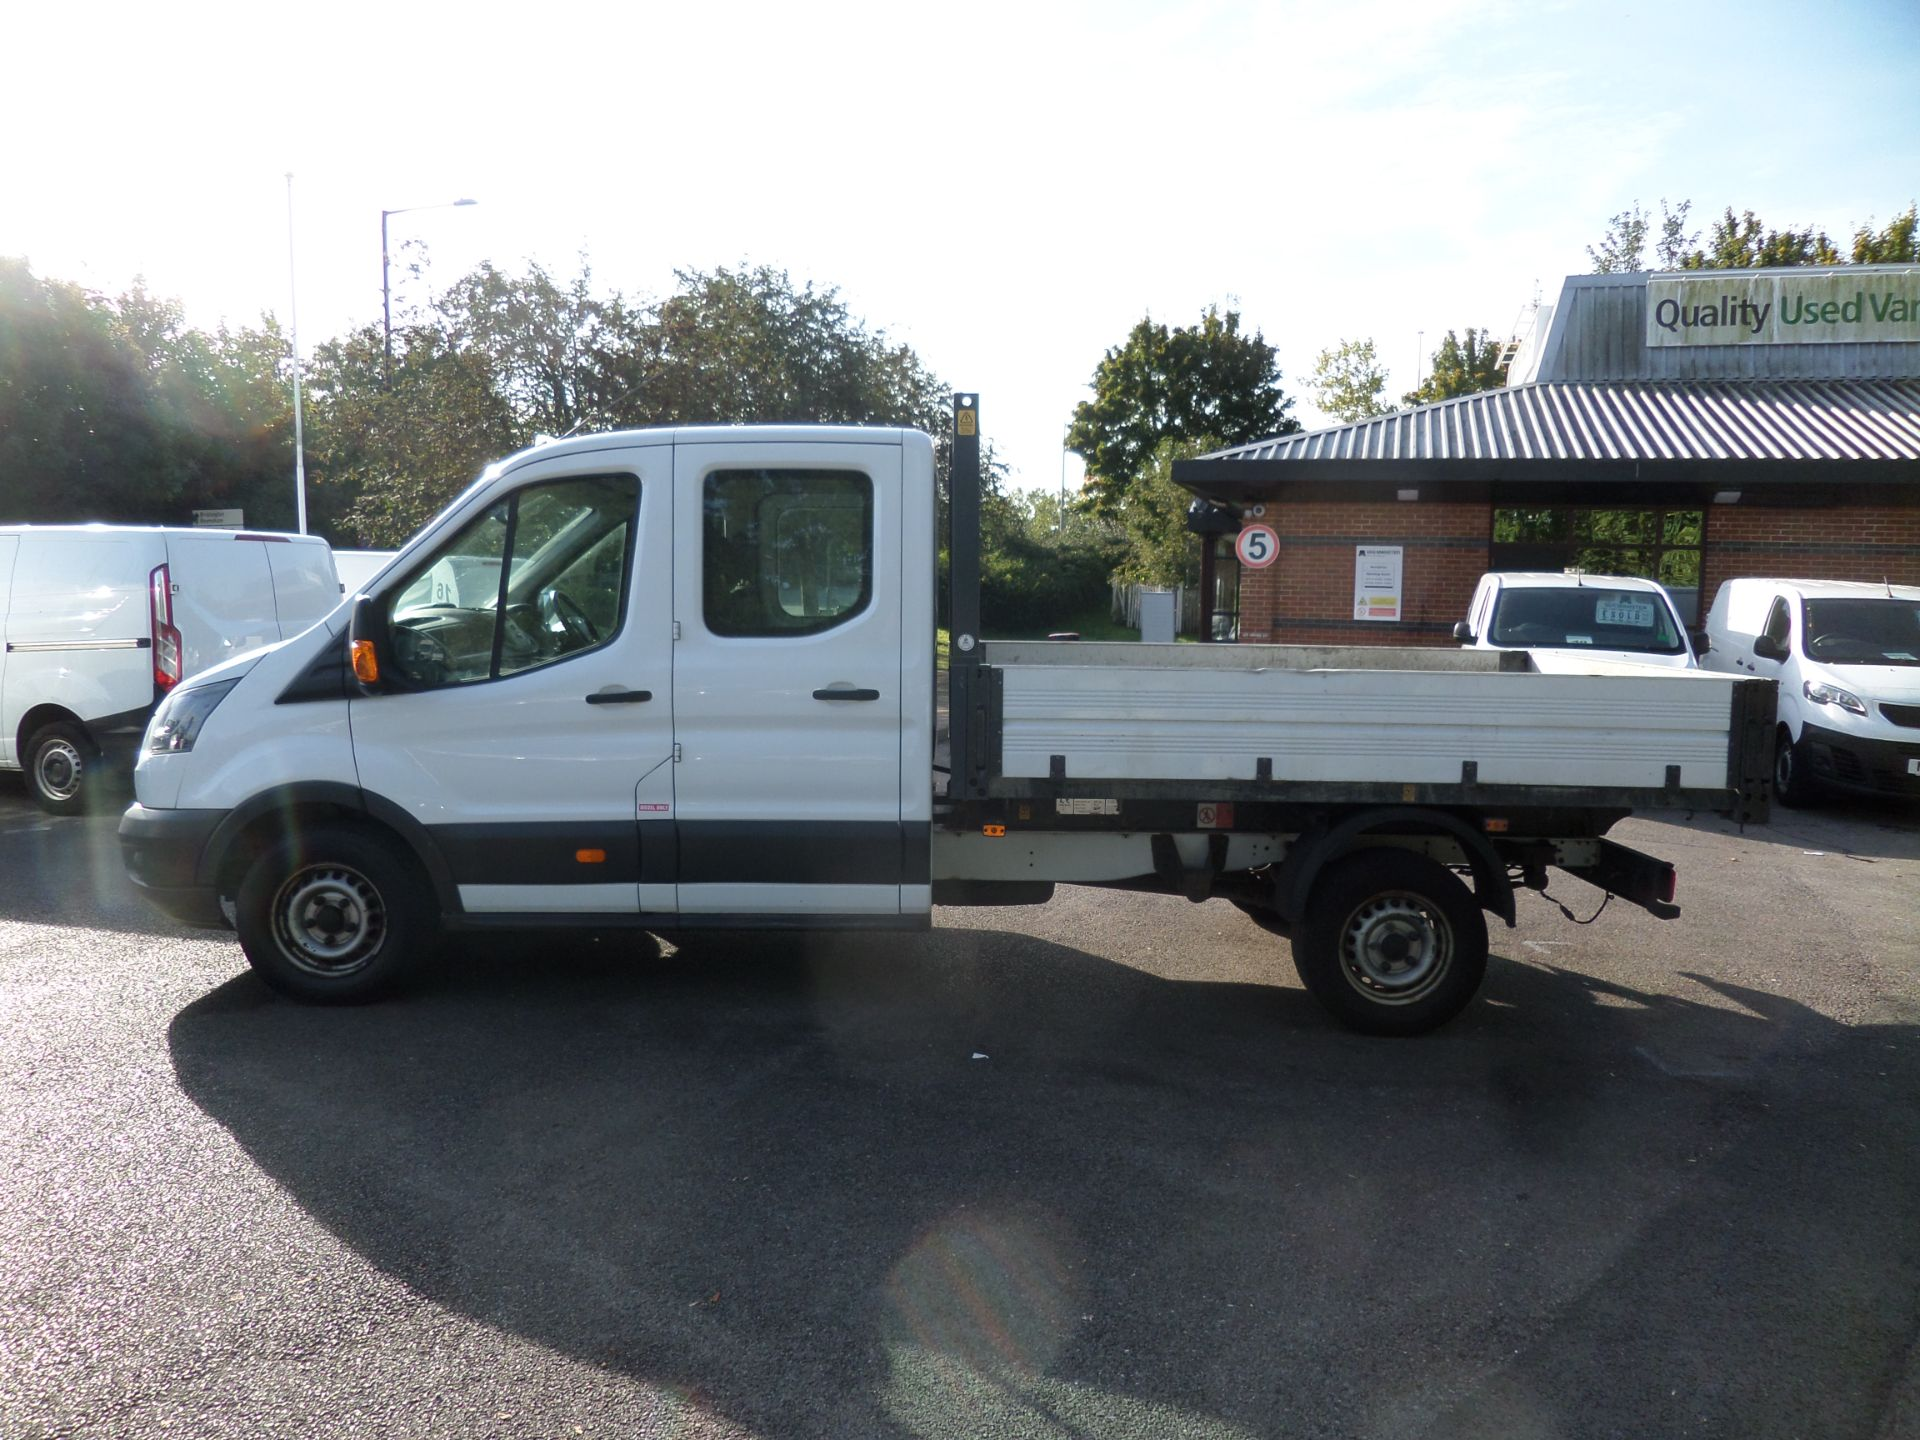 2017 Ford Transit 2.0 Tdci 105Ps H2 Double Cab Tipper Euro 6 (HV67HJC) Image 6